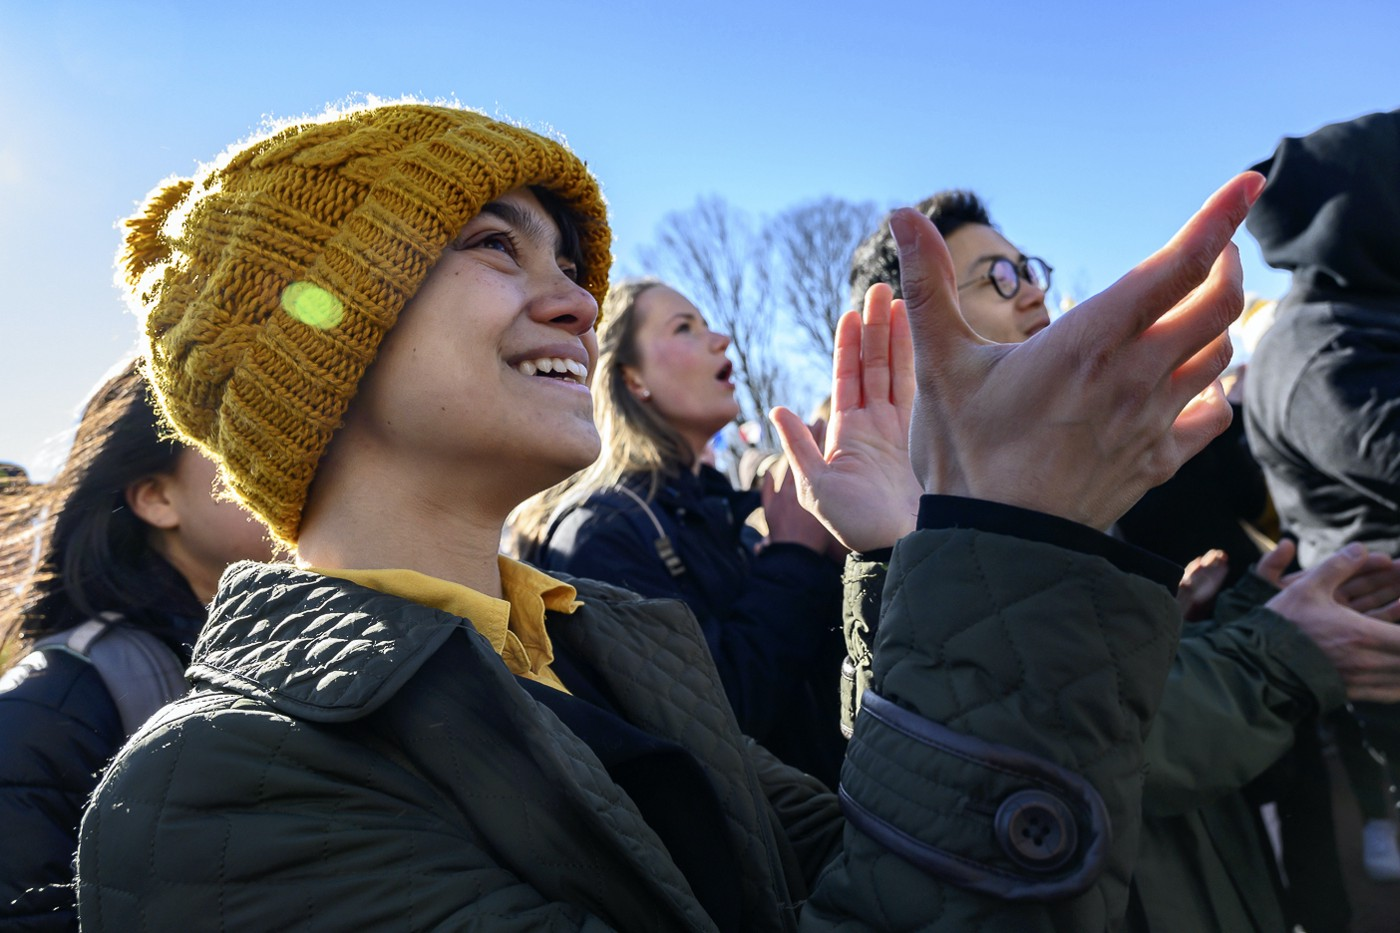 a person in a yellow knit hat, facing right, smiling and clapping, amid a crowd of people